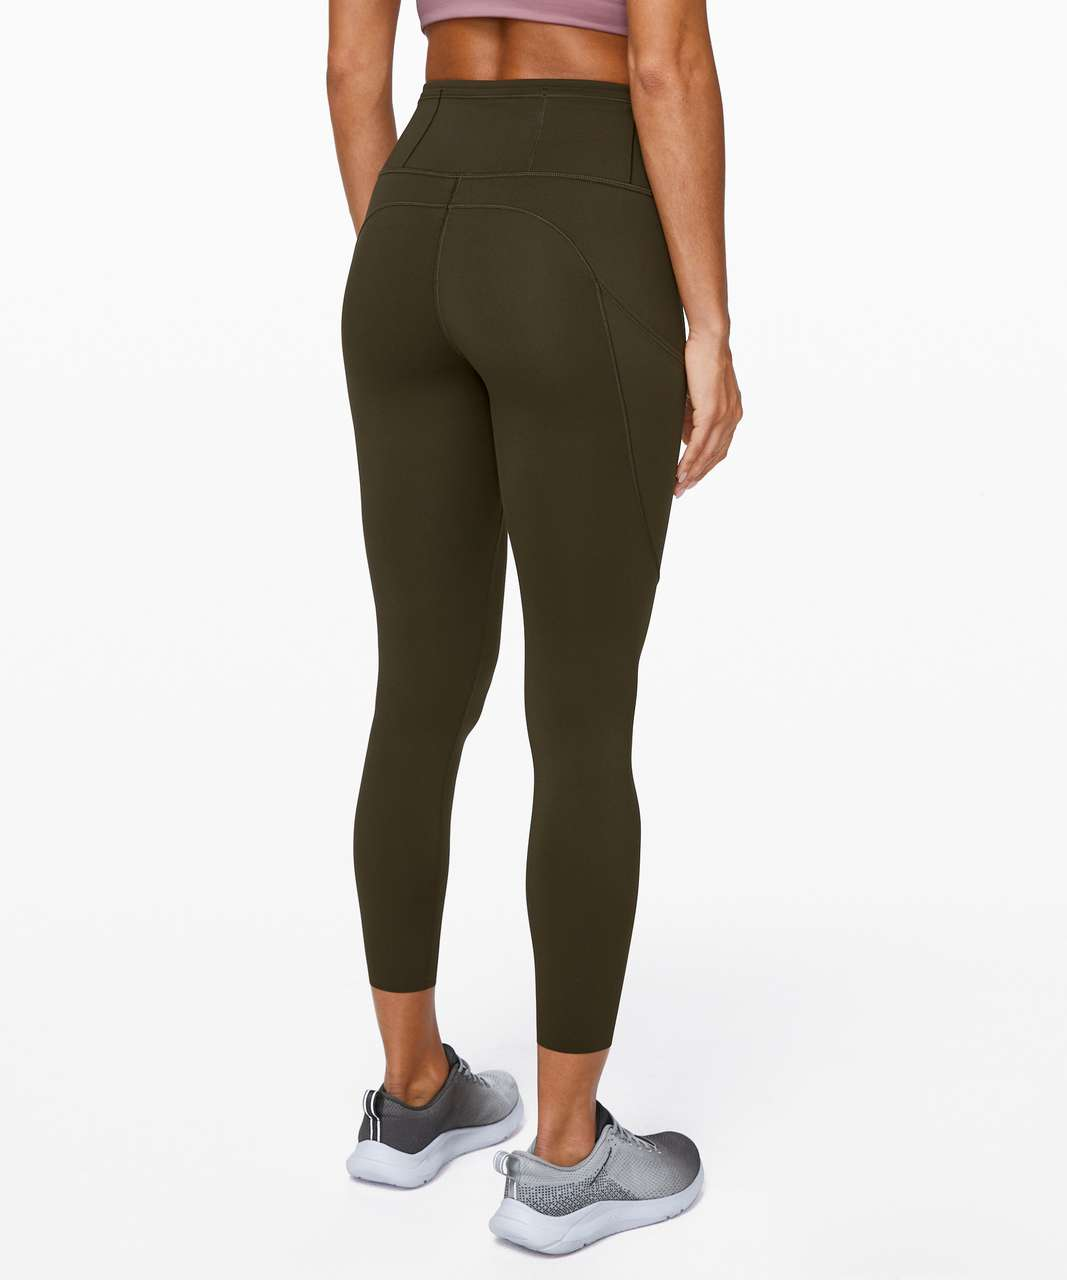 "Lululemon Fast and Free Tight II 25"" *Non-Reflective Nulux - Dark Olive"